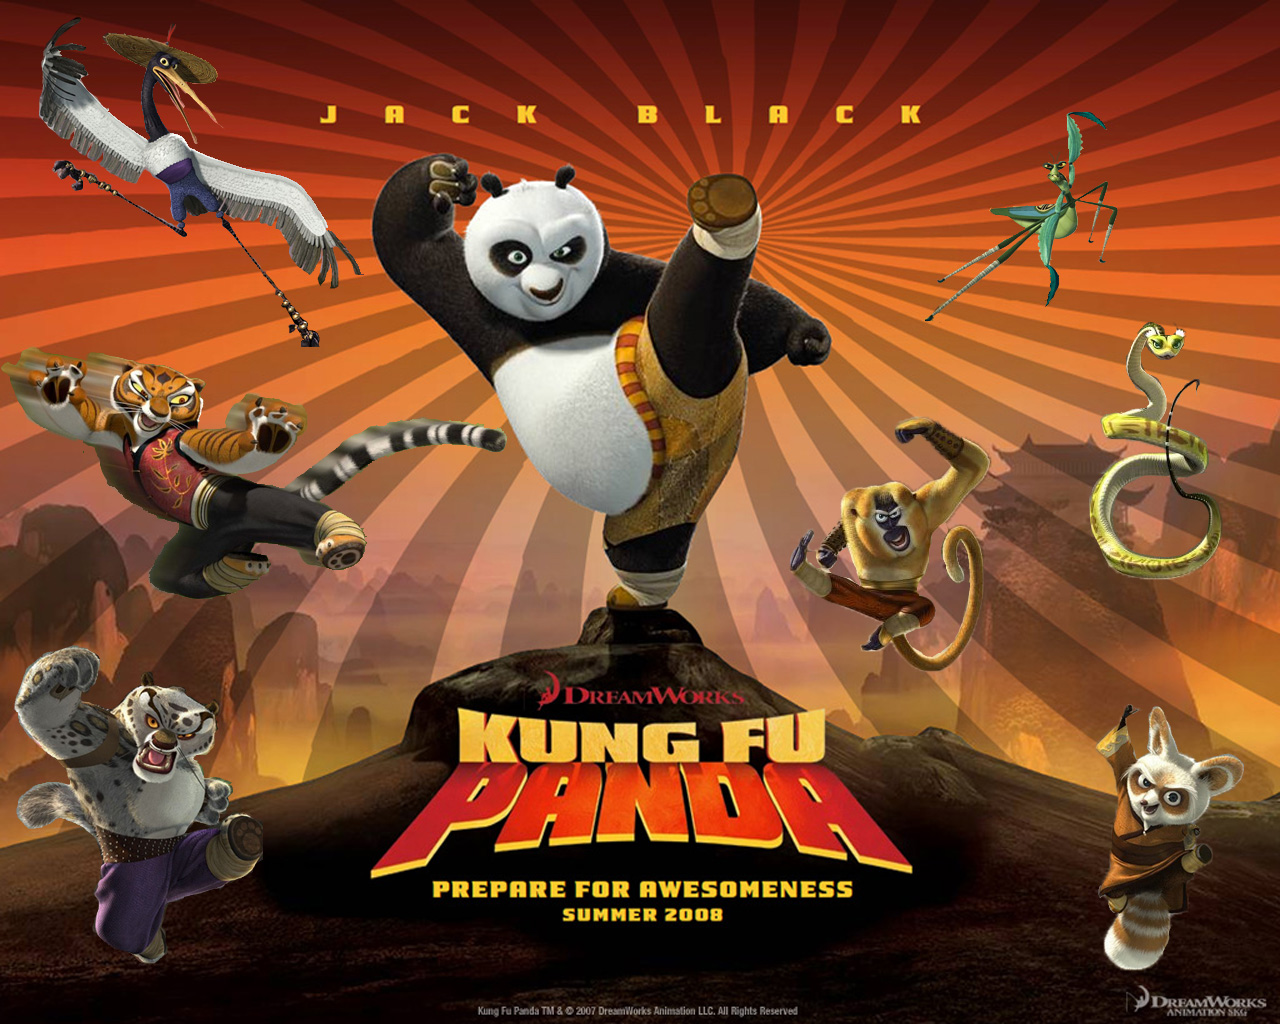 po and cast from kung fu panda movie desktop wallpaper